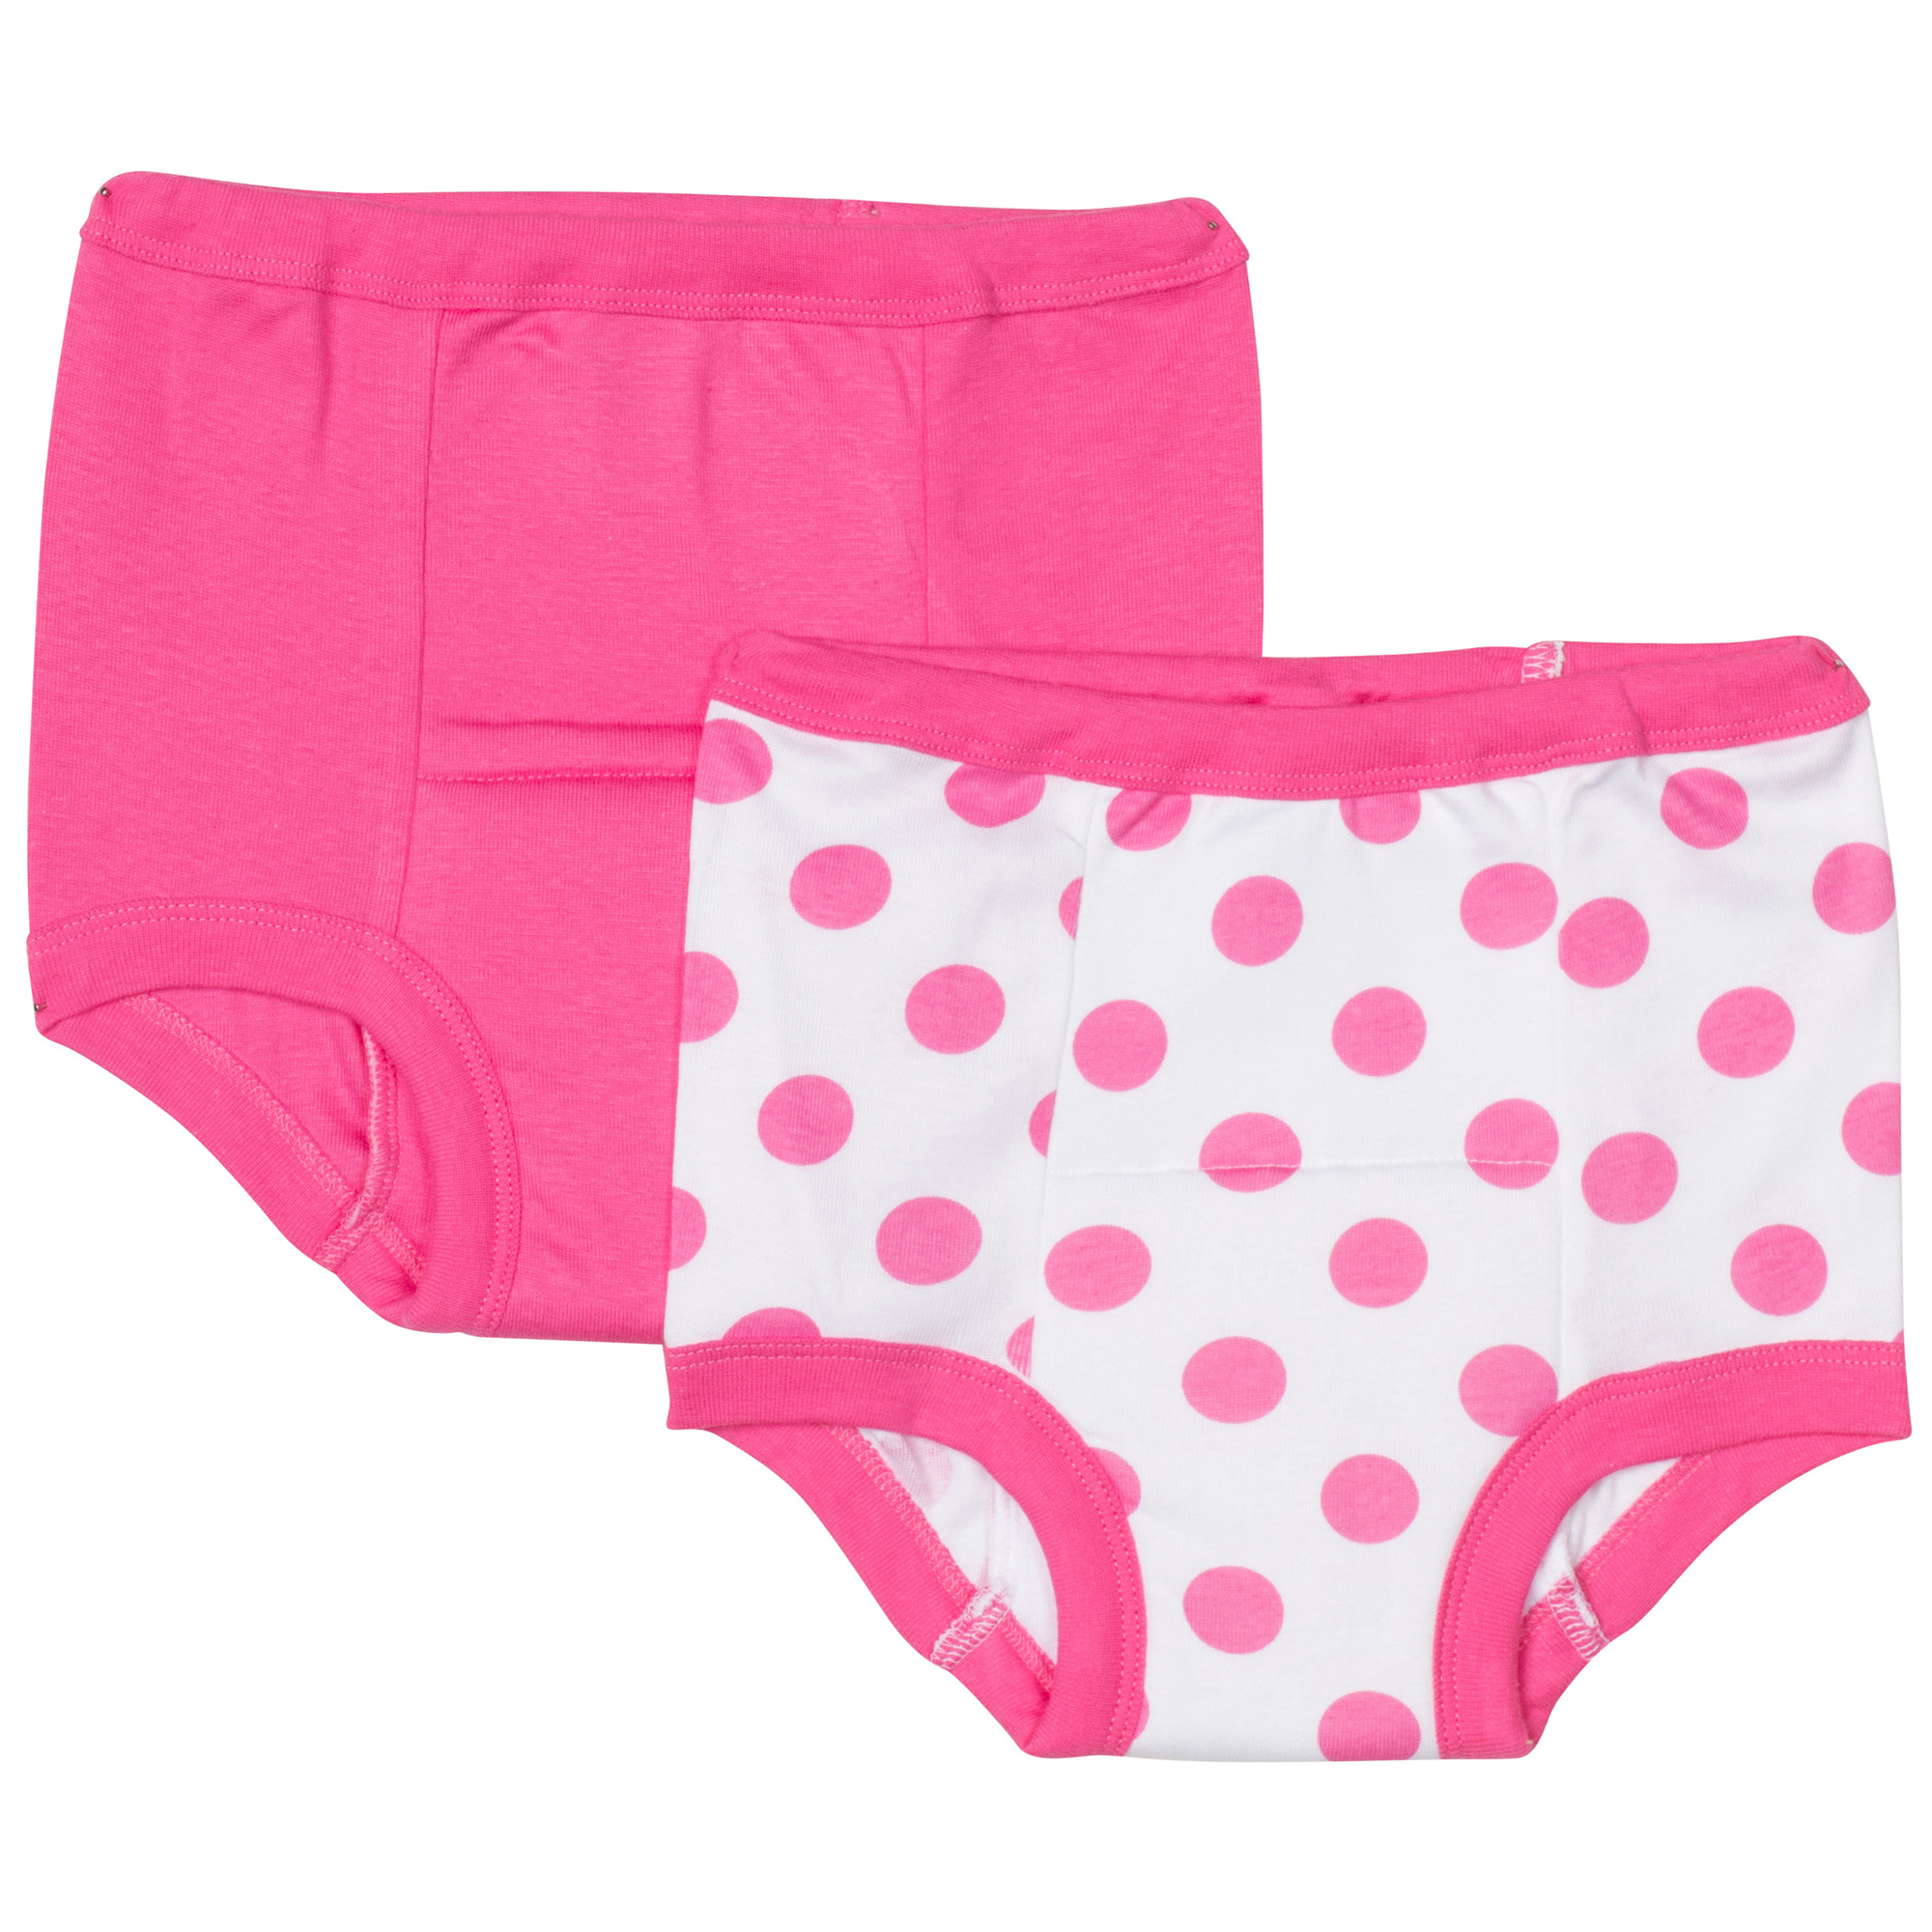 Gerber Training Pants - 2 Pack - Pink Polka Dot - 3T